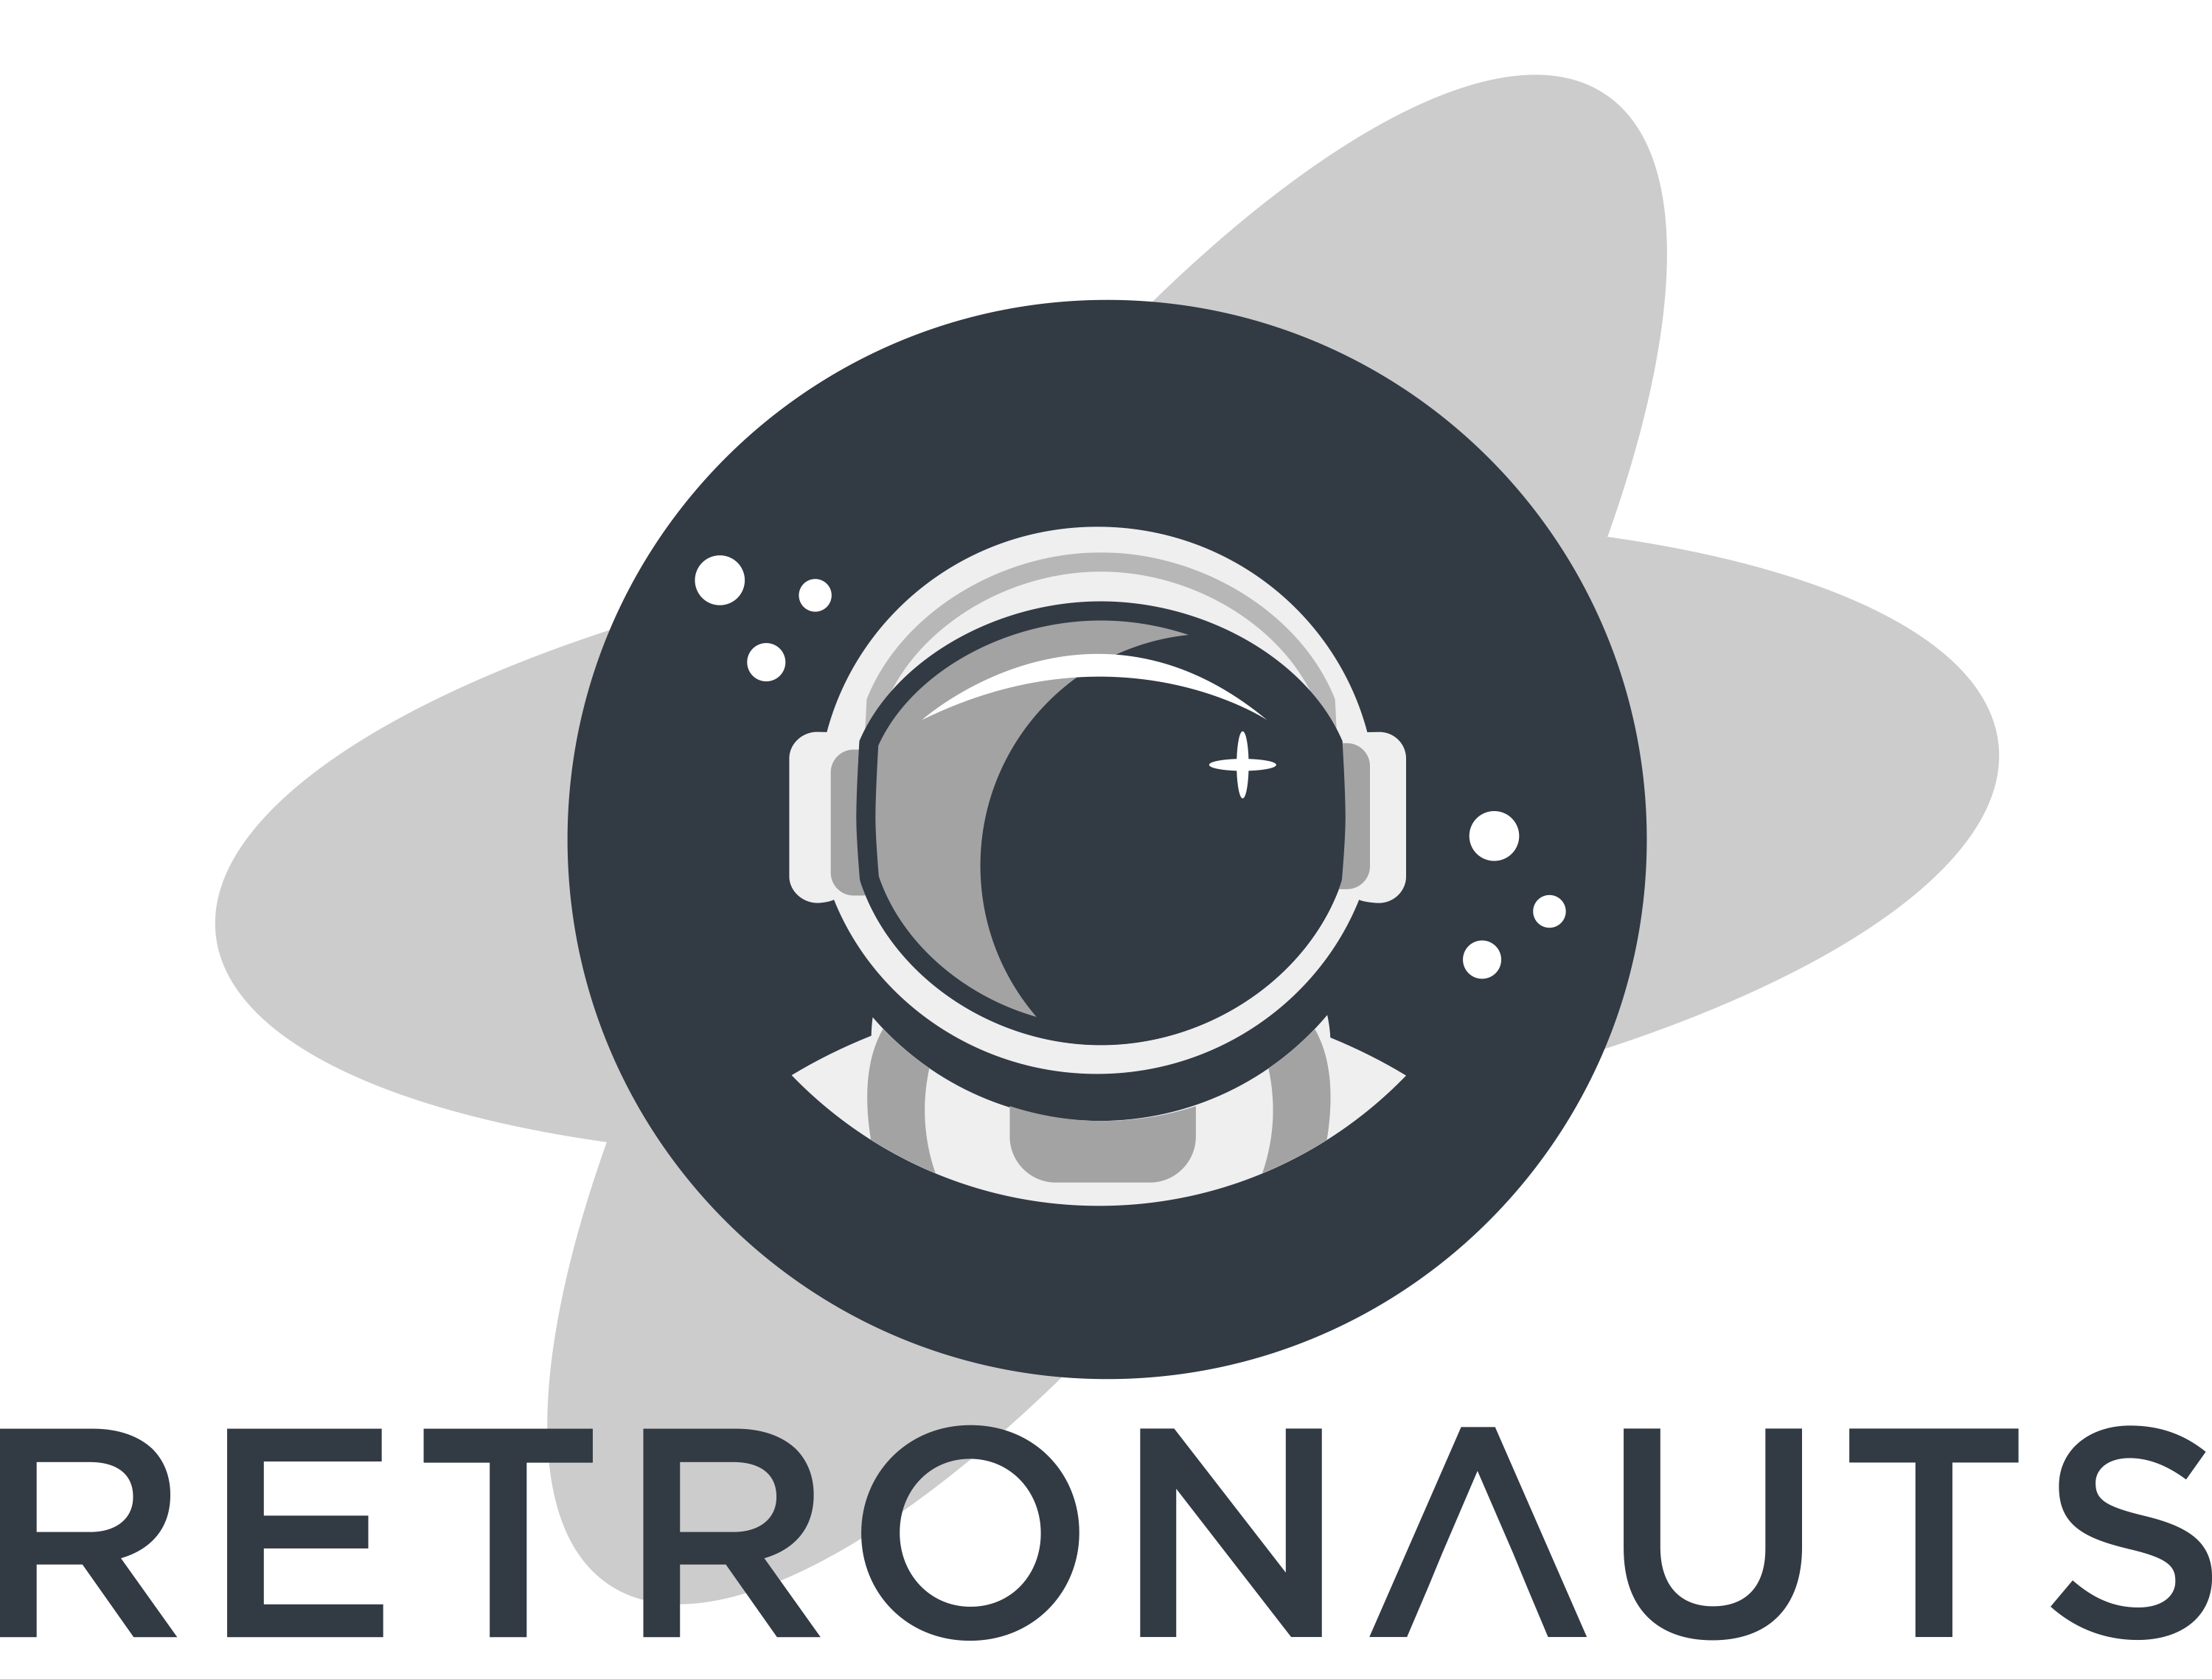 Come See Retronauts LIVE at Portland Retro Gaming Expo 2019!